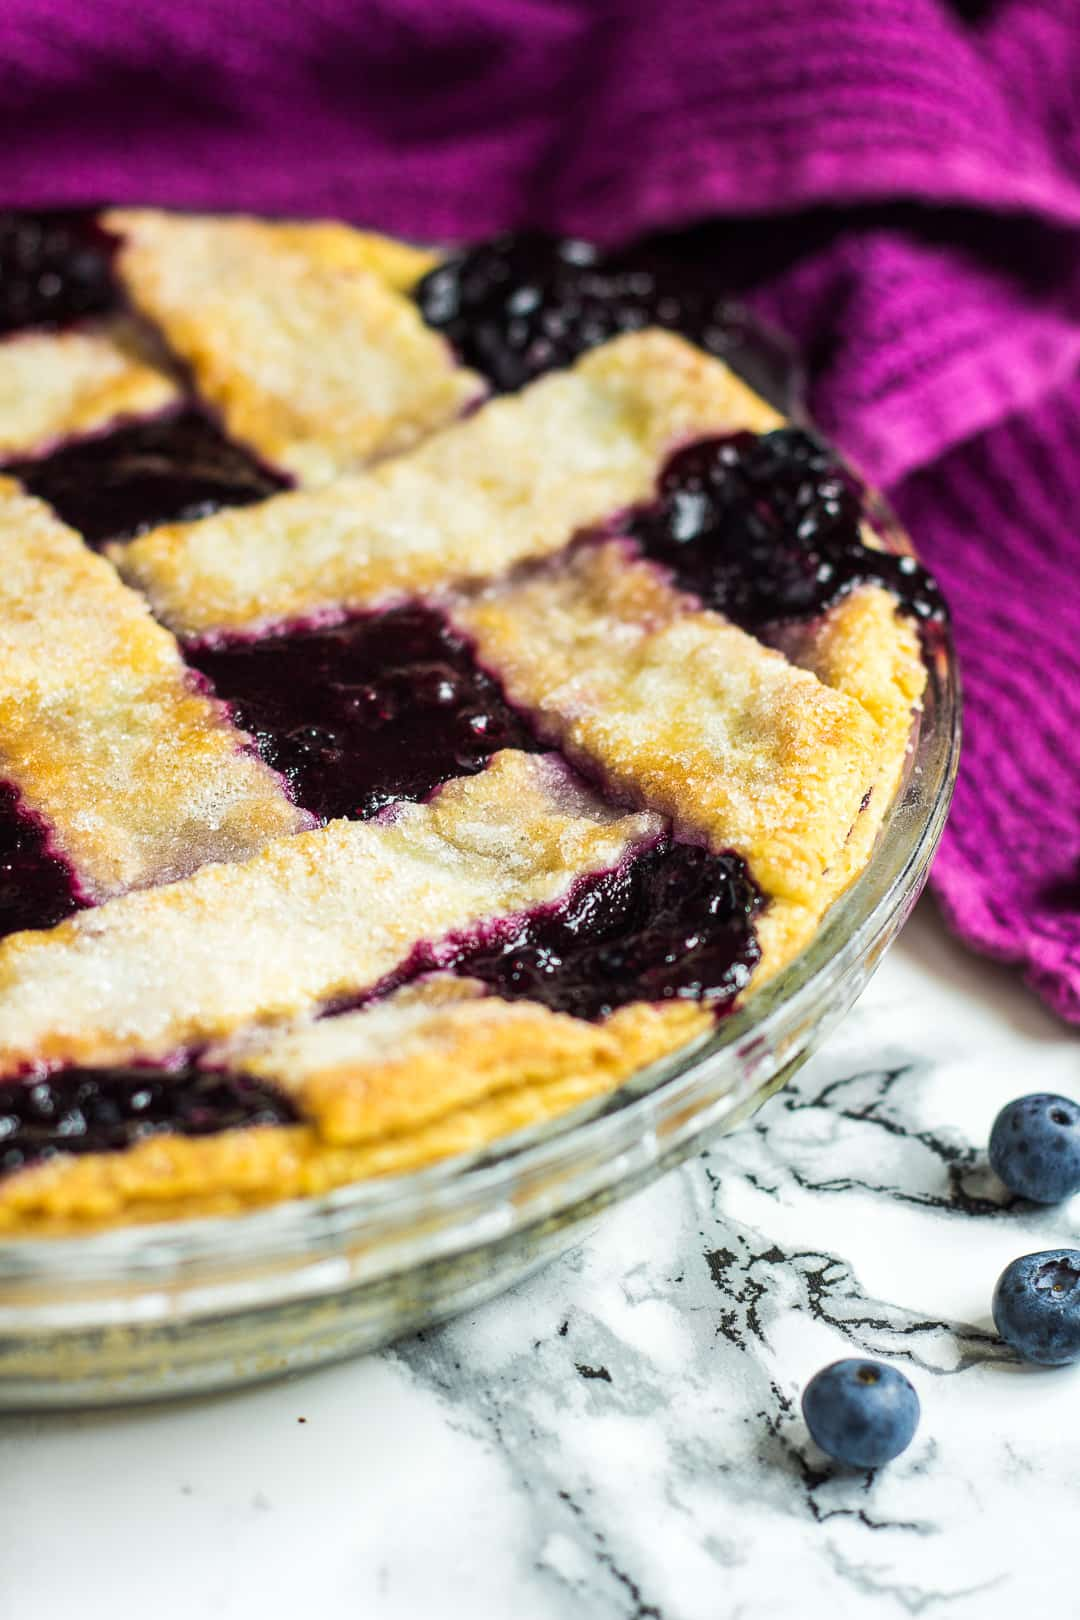 A homemade blueberry pie in a glass pie dish.